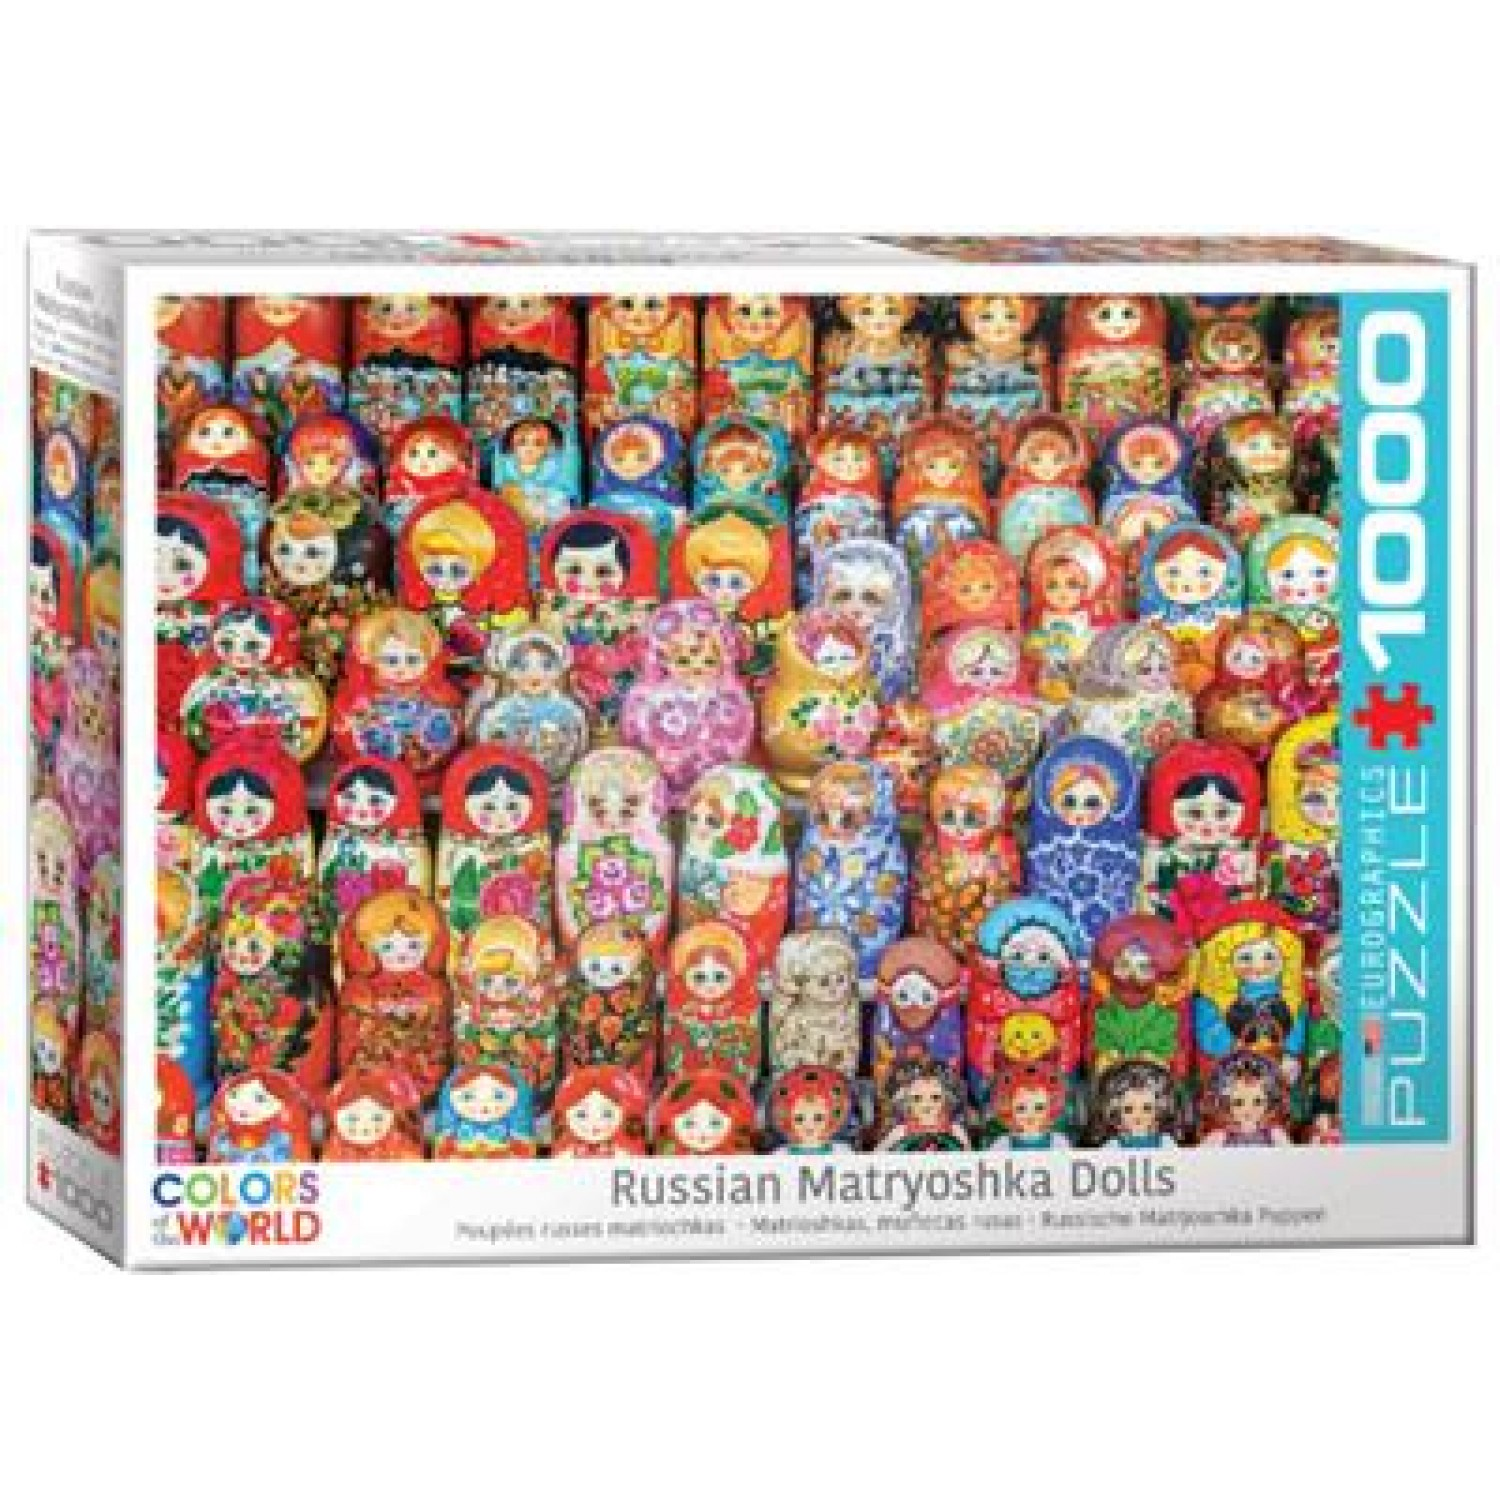 EUROGRAPHICS ΠΆΖΛ 1000ΤΕΜ. 6000-5420 RUSSIAN MATRYOSHKA DOLLS - COLORS WORLD SERIES